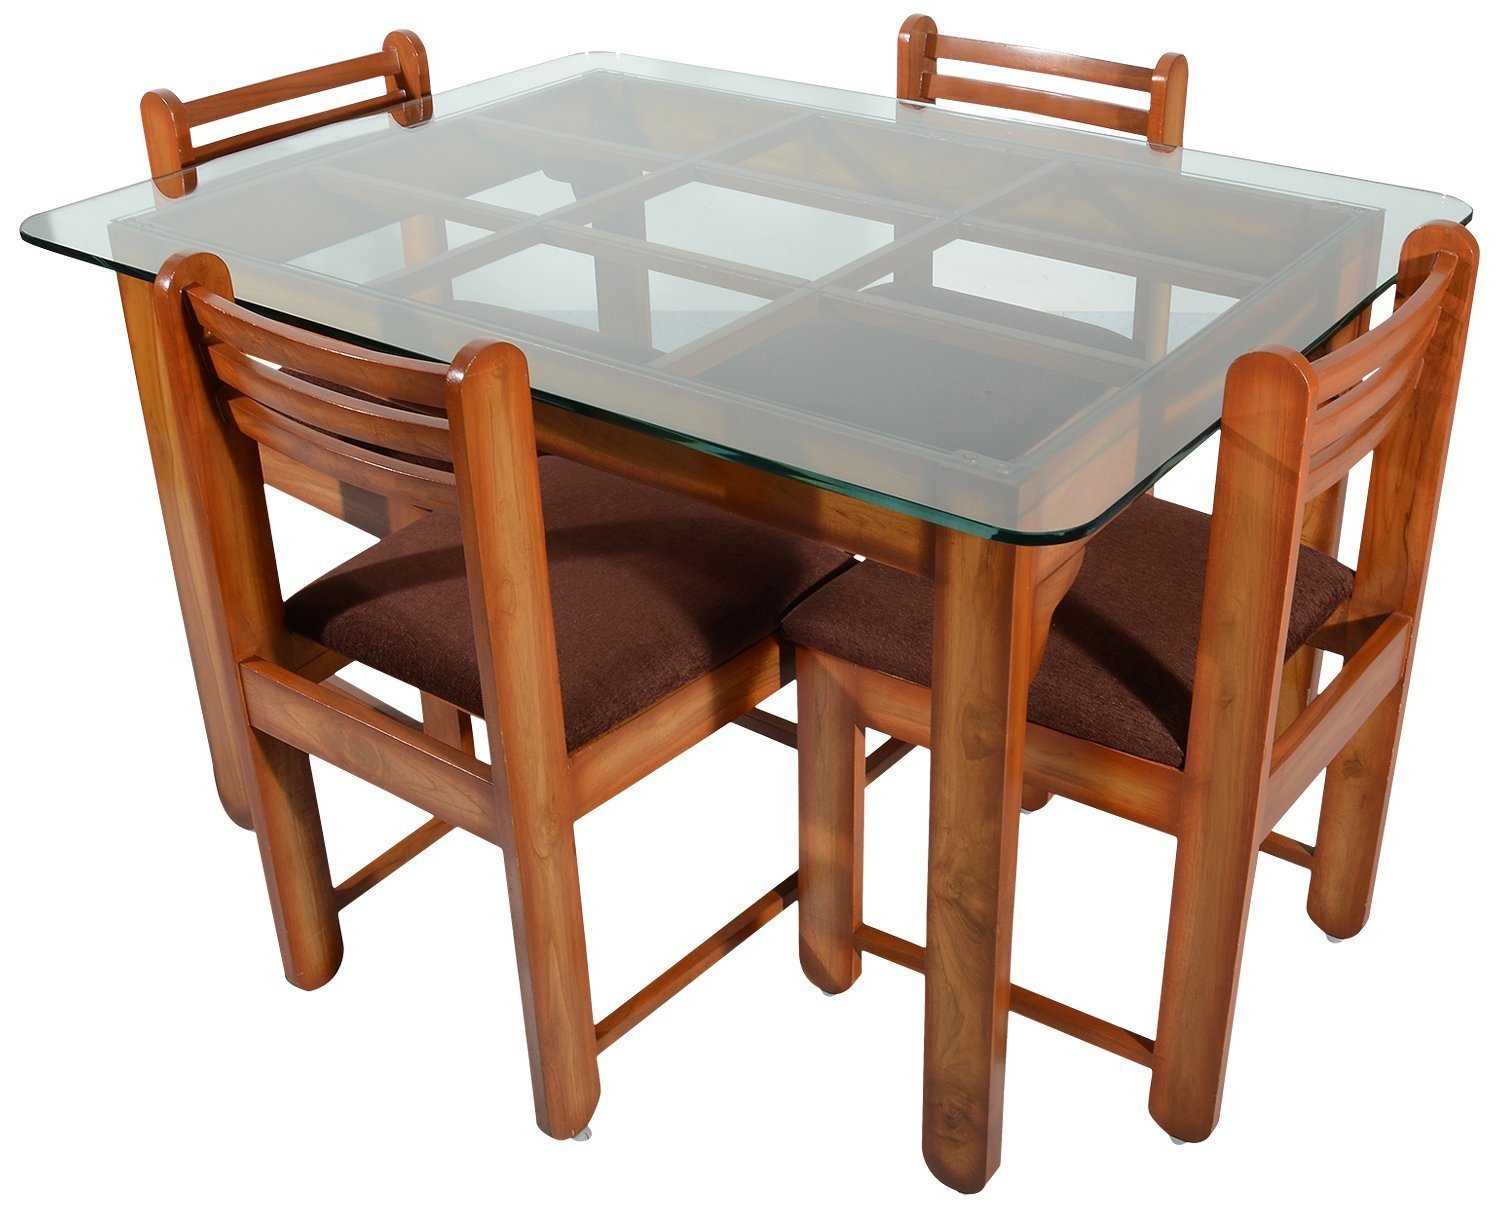 Rawat D14DC14 Four Seater Dining Table (Muticolour)  sc 1 st  Rawat Furniture & Rawat D14DC14 Four Seater Dining Table (Muticolour) | Rawat Furniture